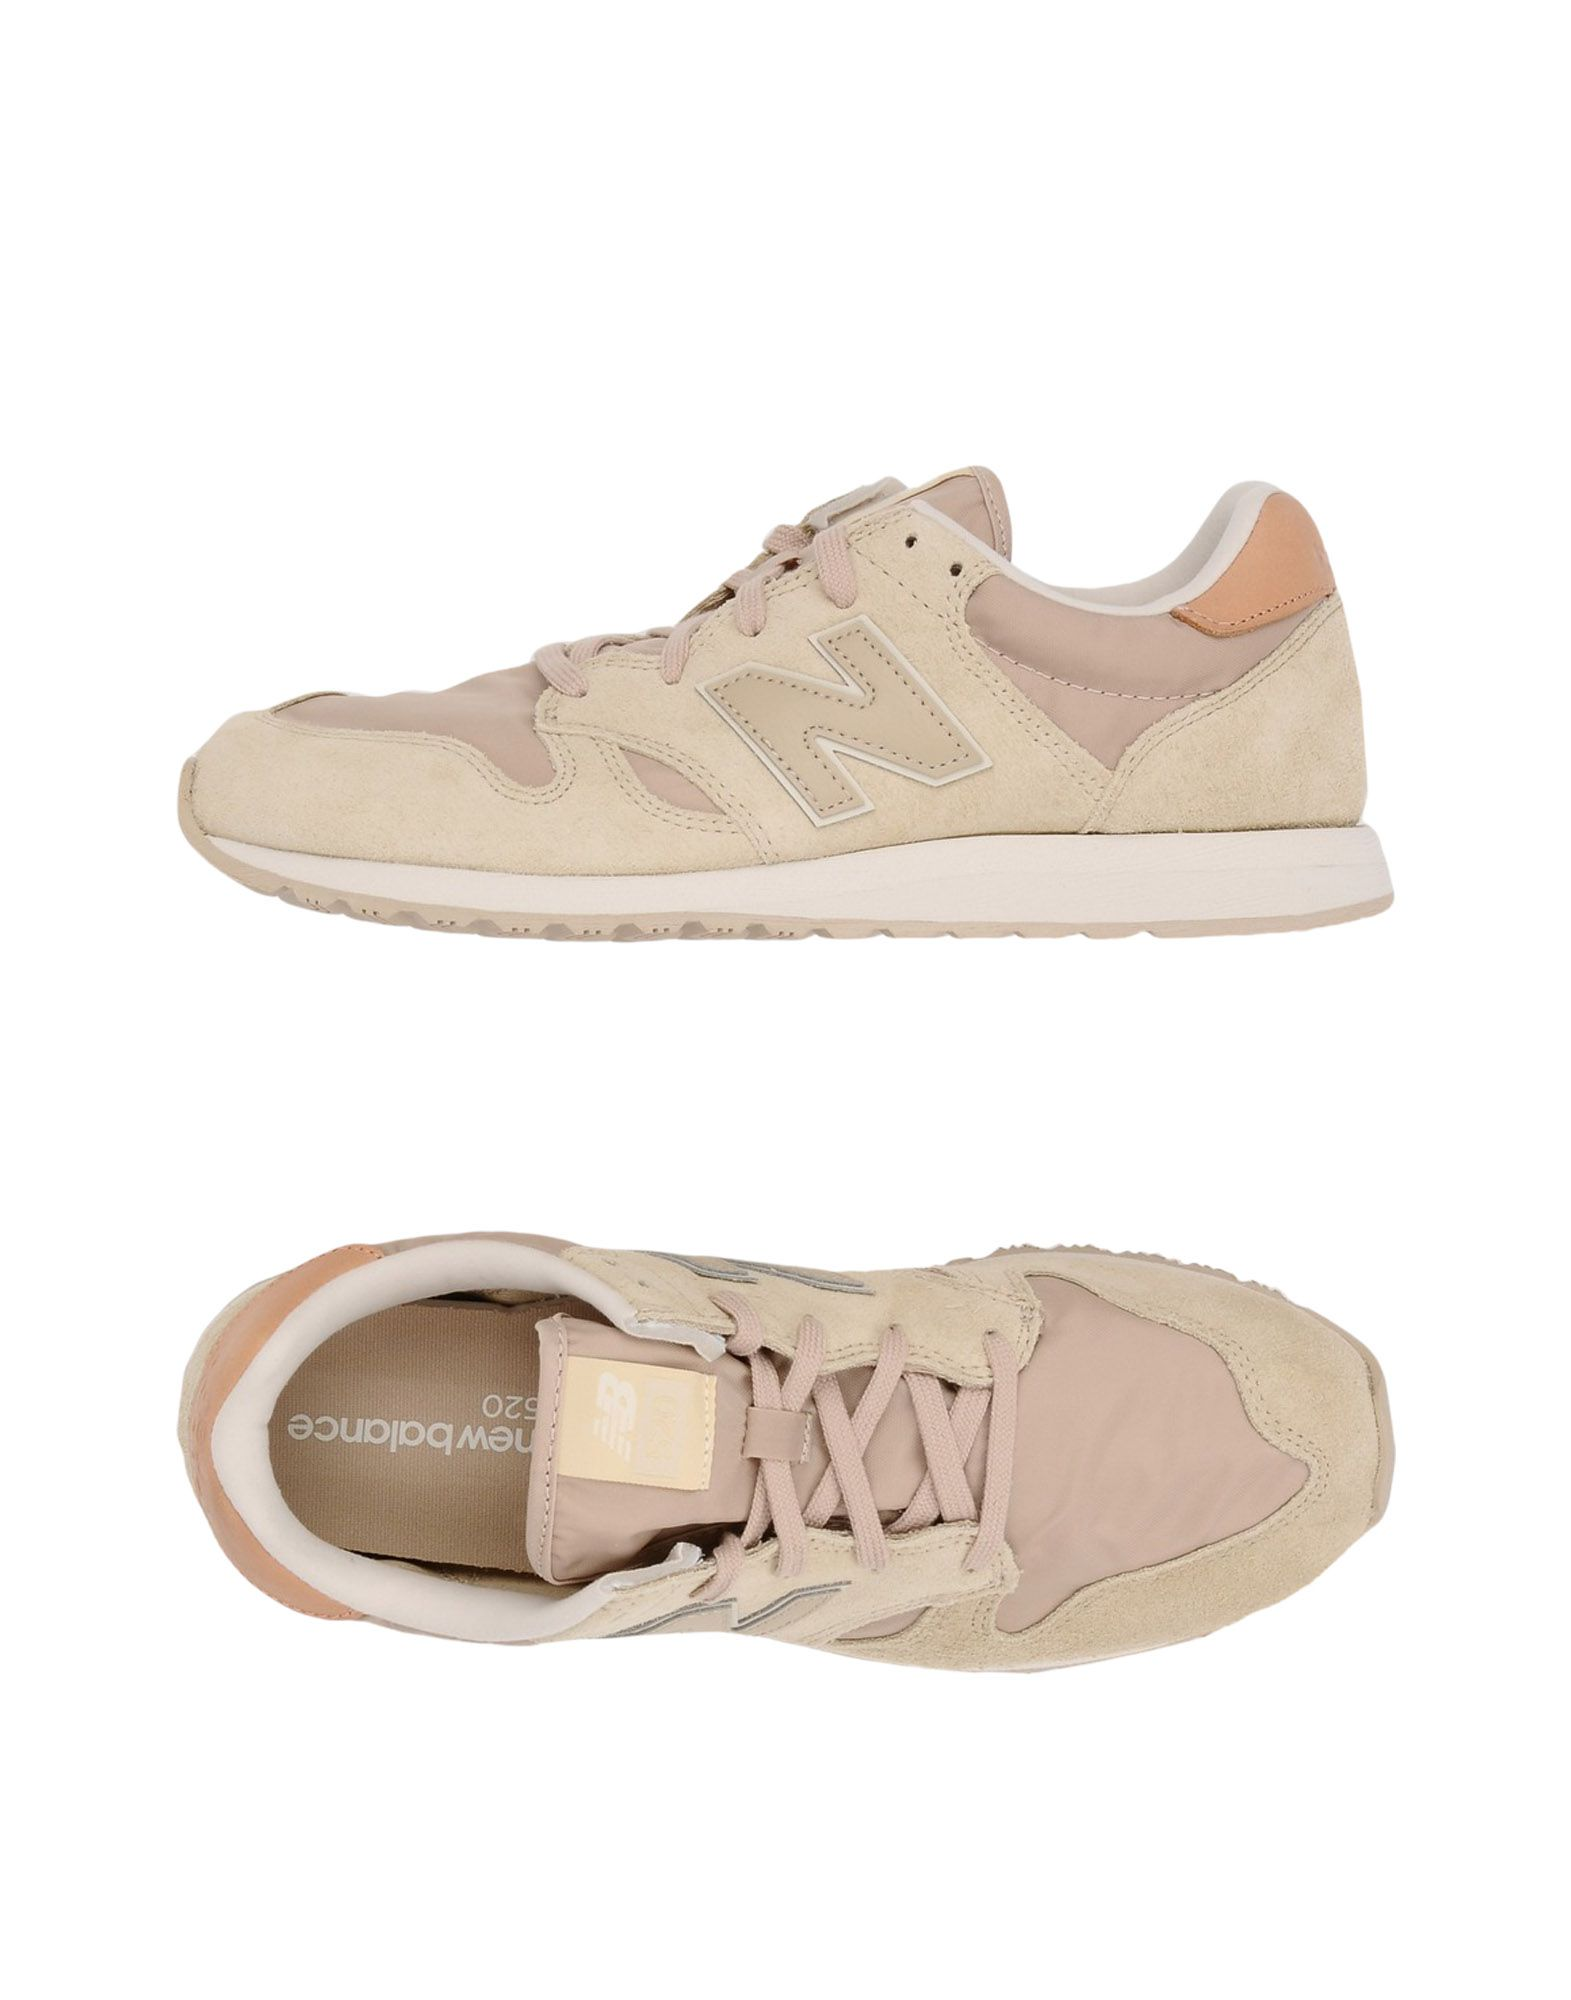 New Balance 520 Vintage - Sneakers - - - Women New Balance Sneakers online on  United Kingdom - 11334199OL 63ba06